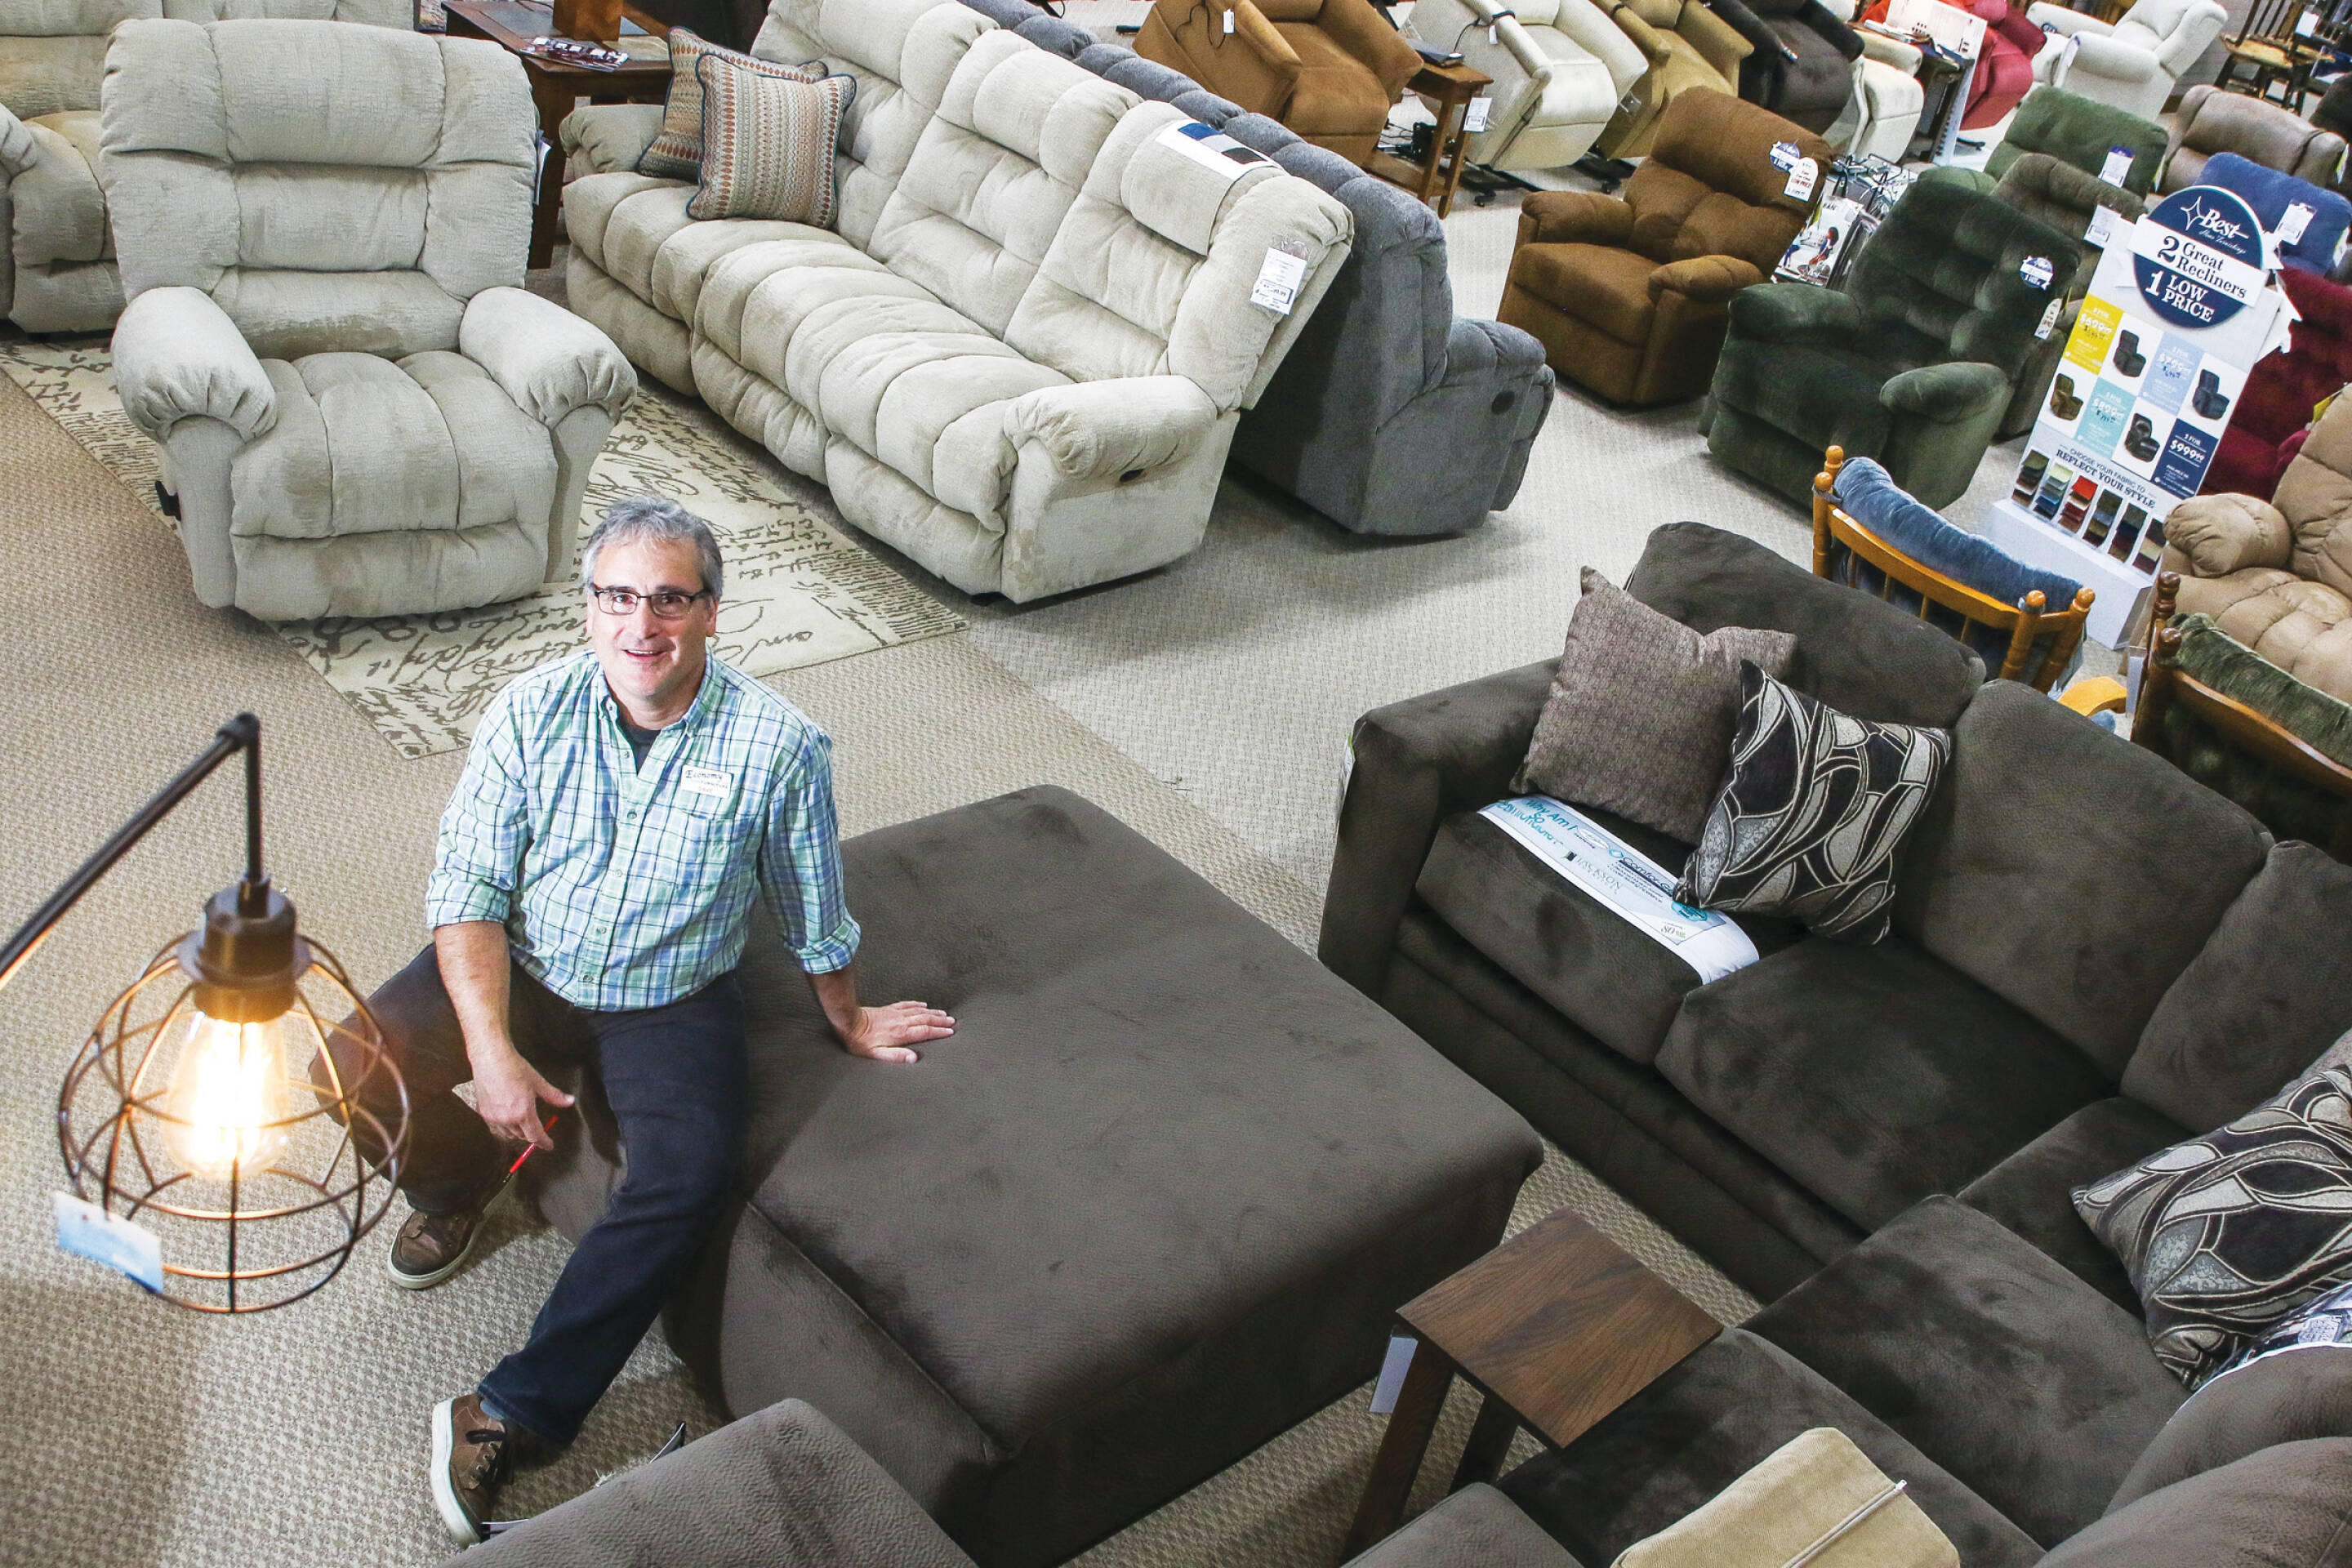 Shop Talk - Economy Furniture opens new location in its 75th.